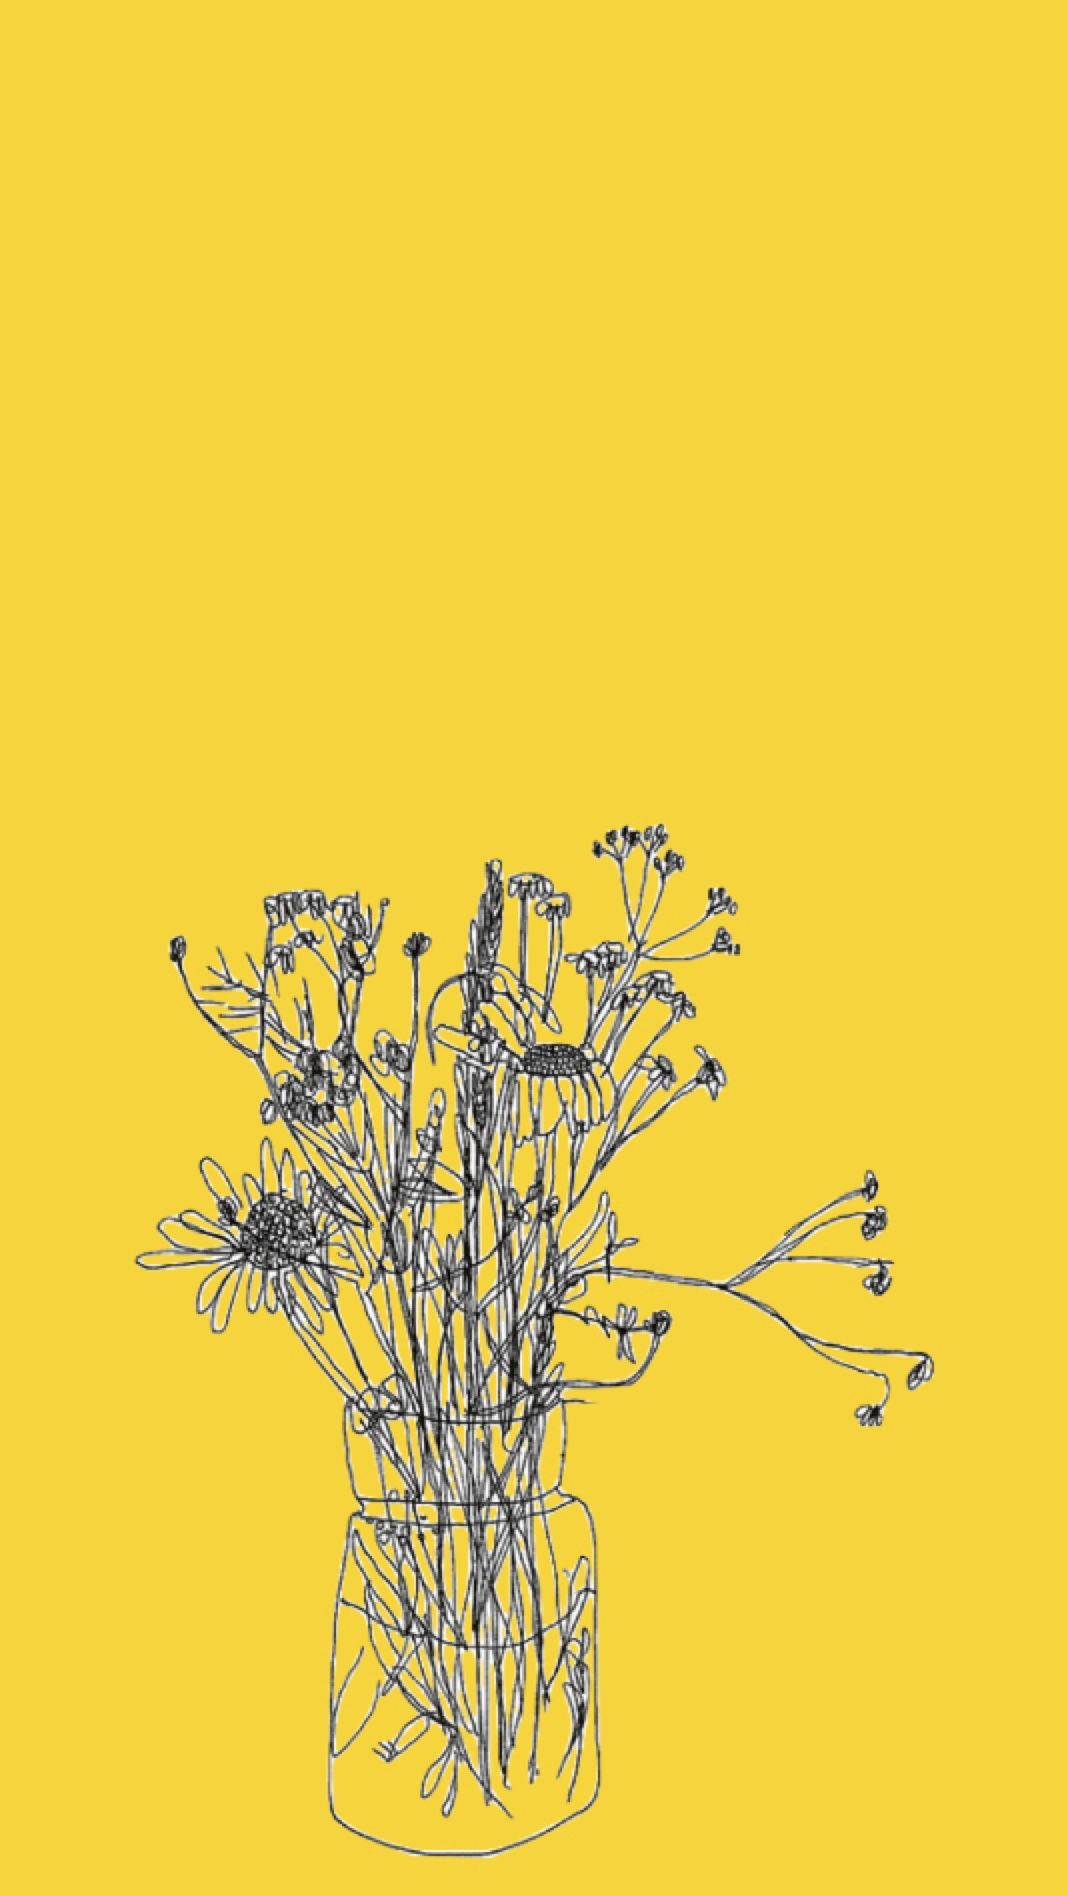 Typography iphone wallpaper tumblr - Overlay Tumblr Flower Iphone Wallpaperiphone